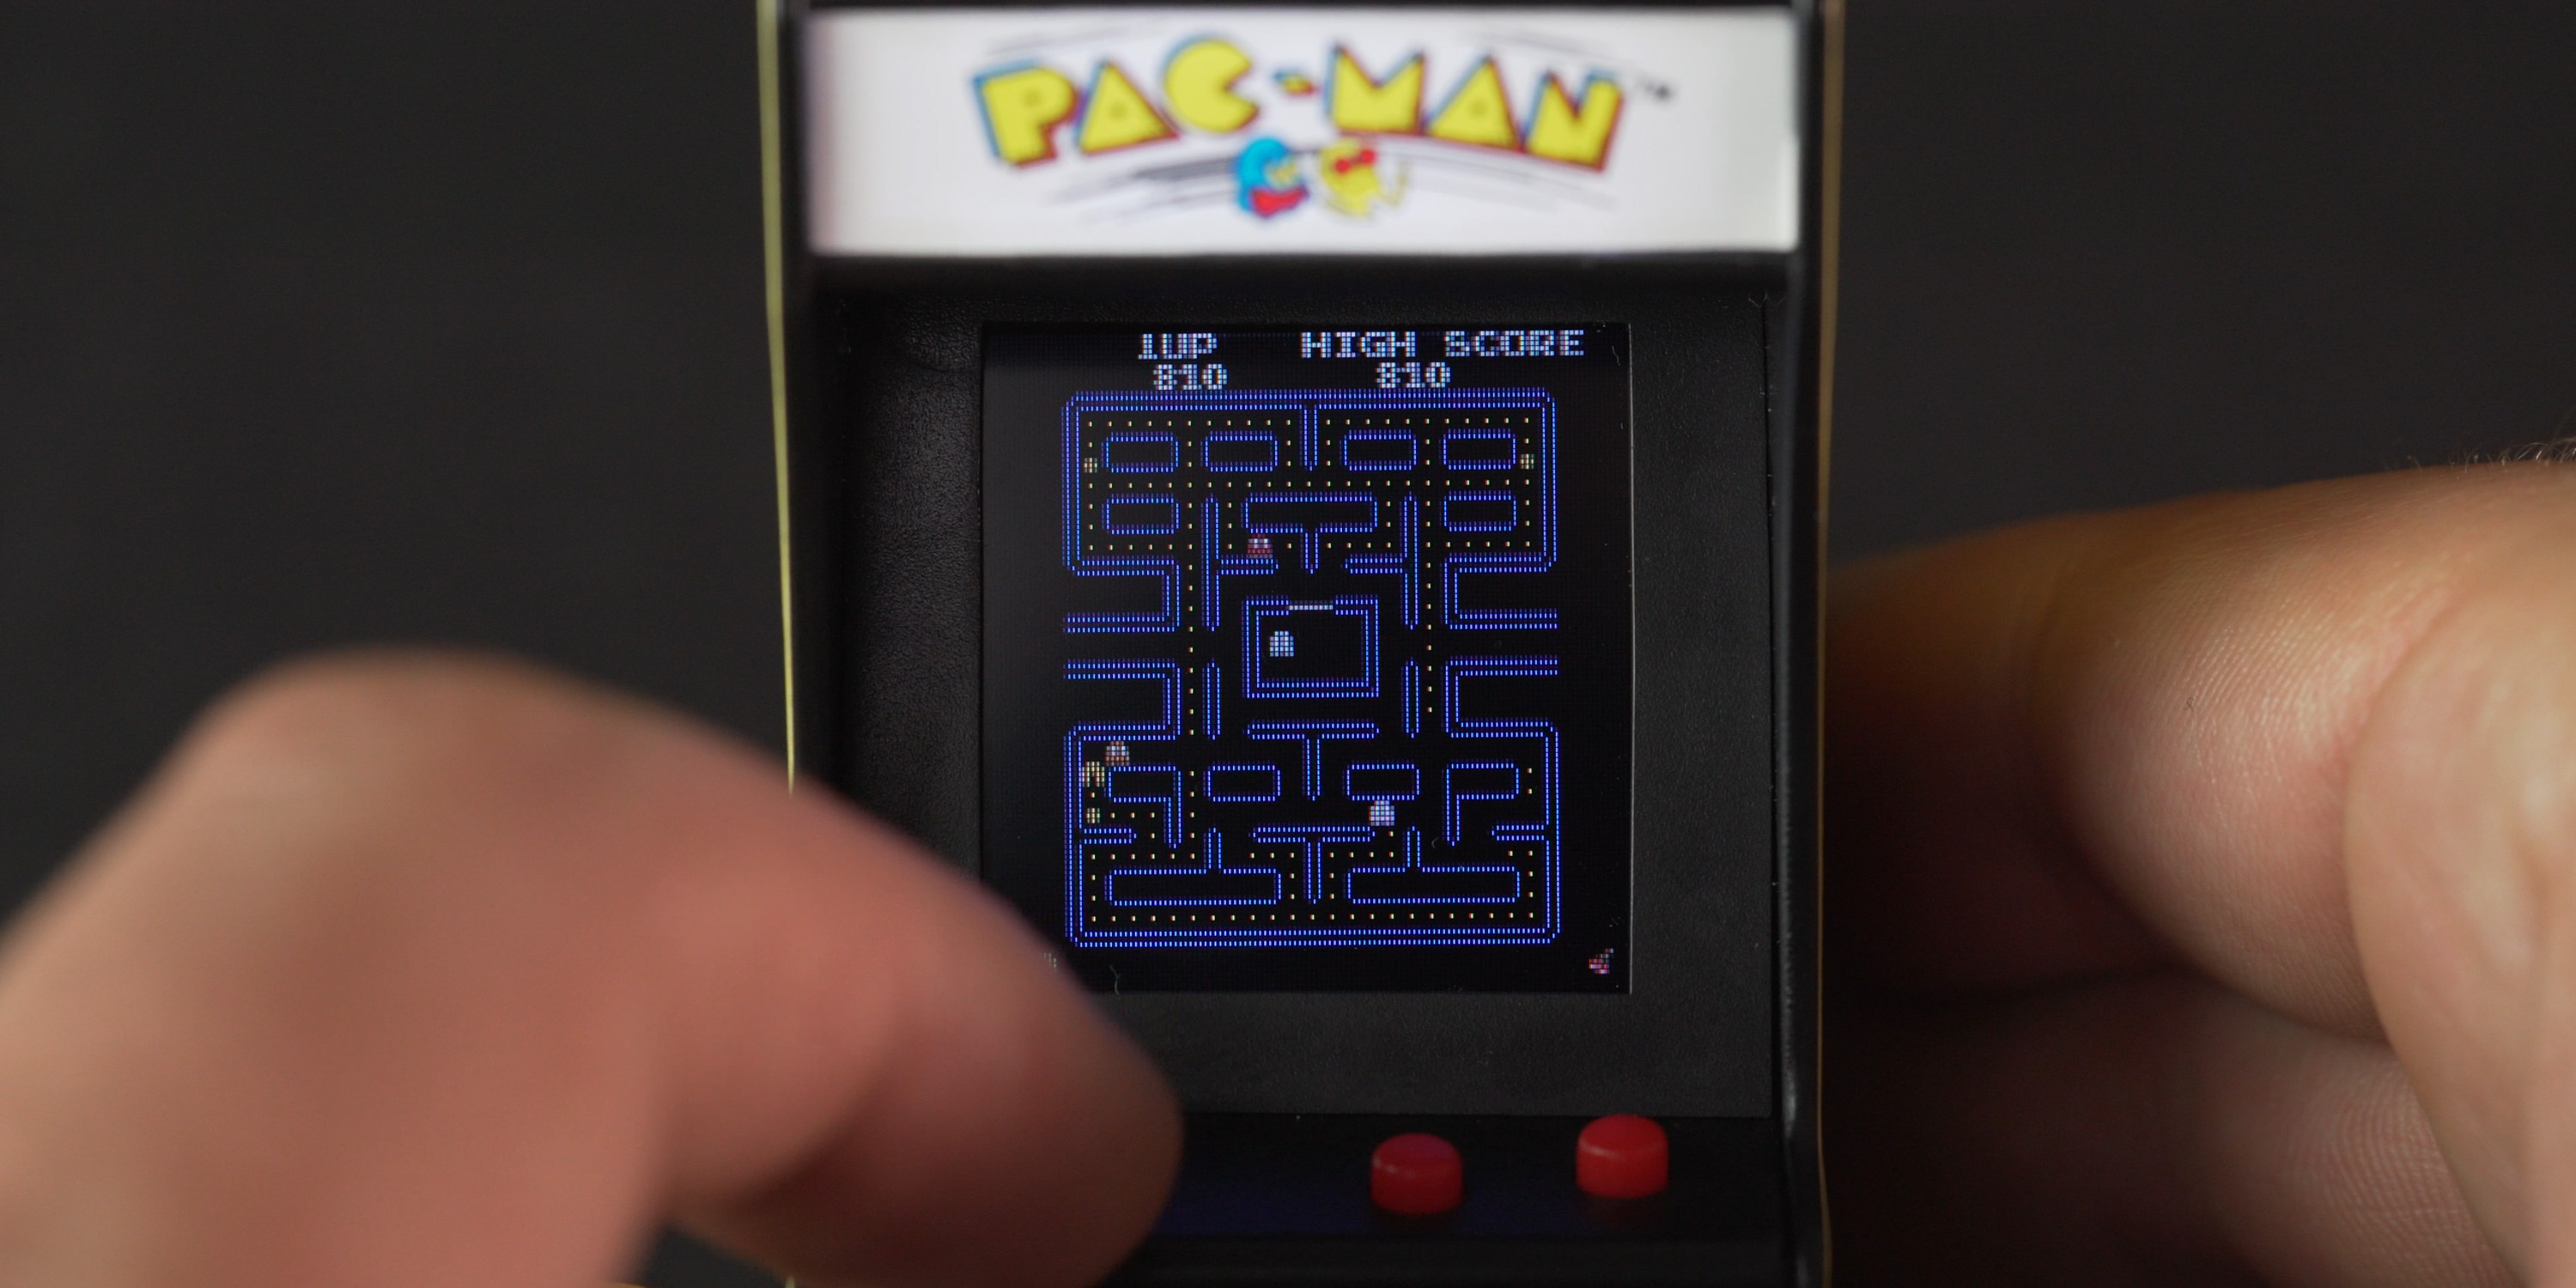 Playing the Super Impulse PAC-MAN Tiny Arcade